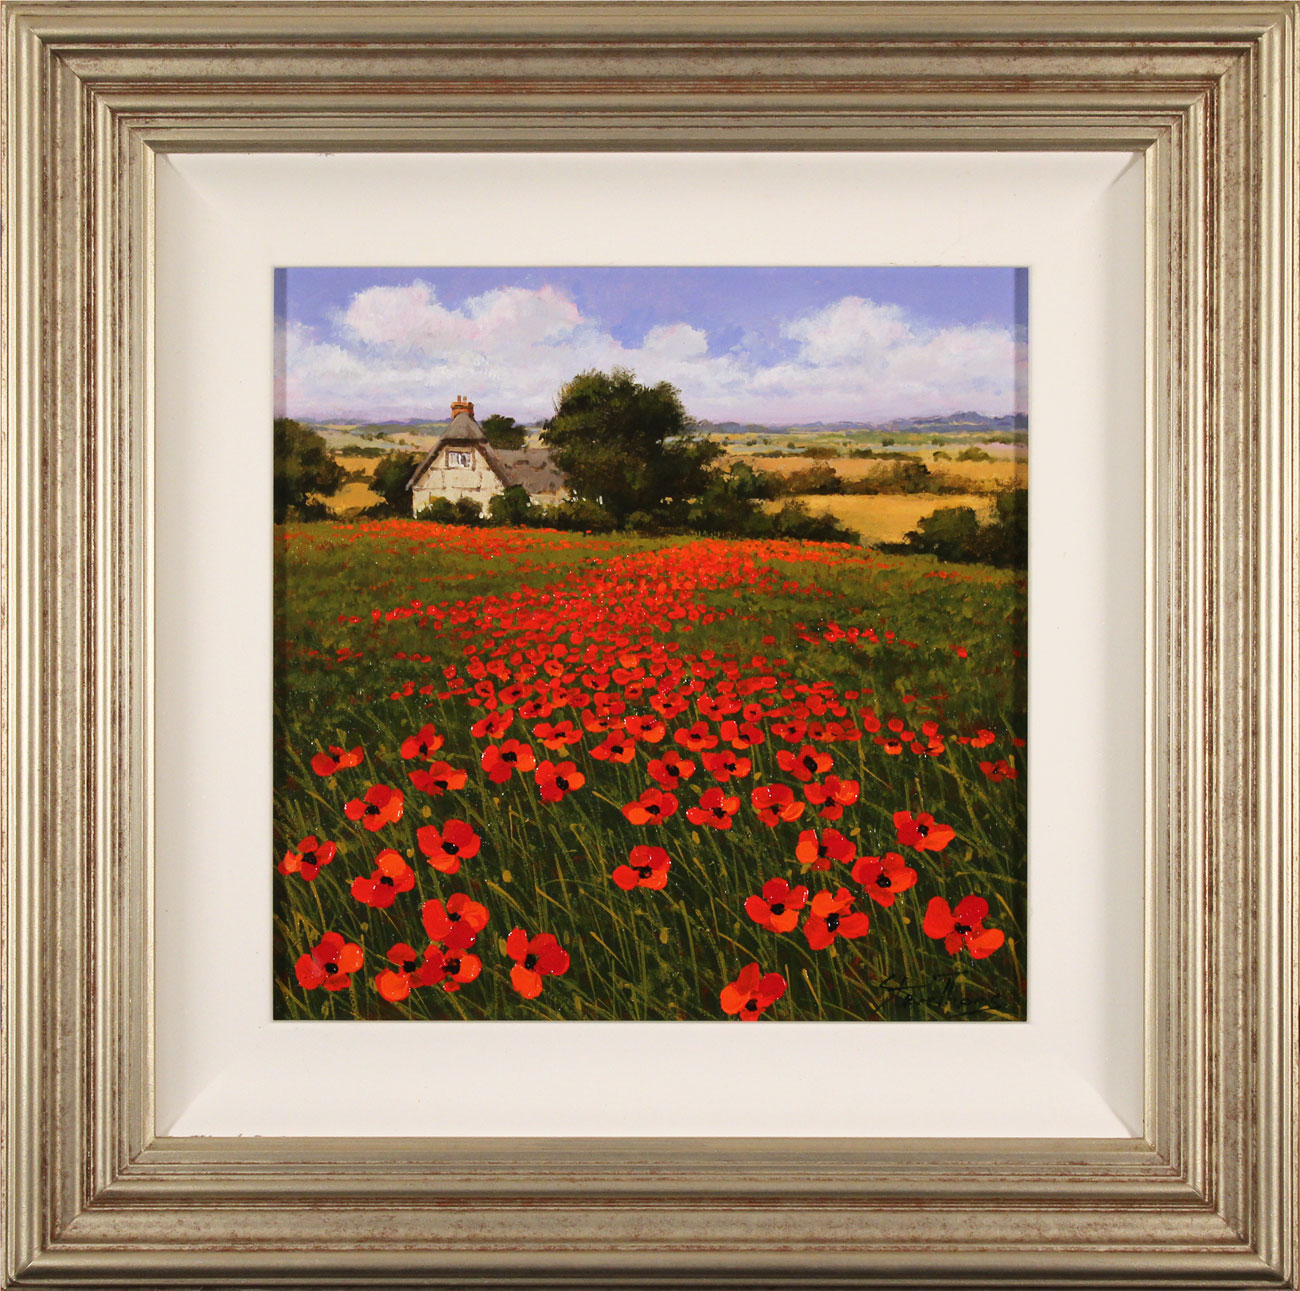 Steve Thoms, Original oil painting on panel, Yorkshire Poppies, click to enlarge